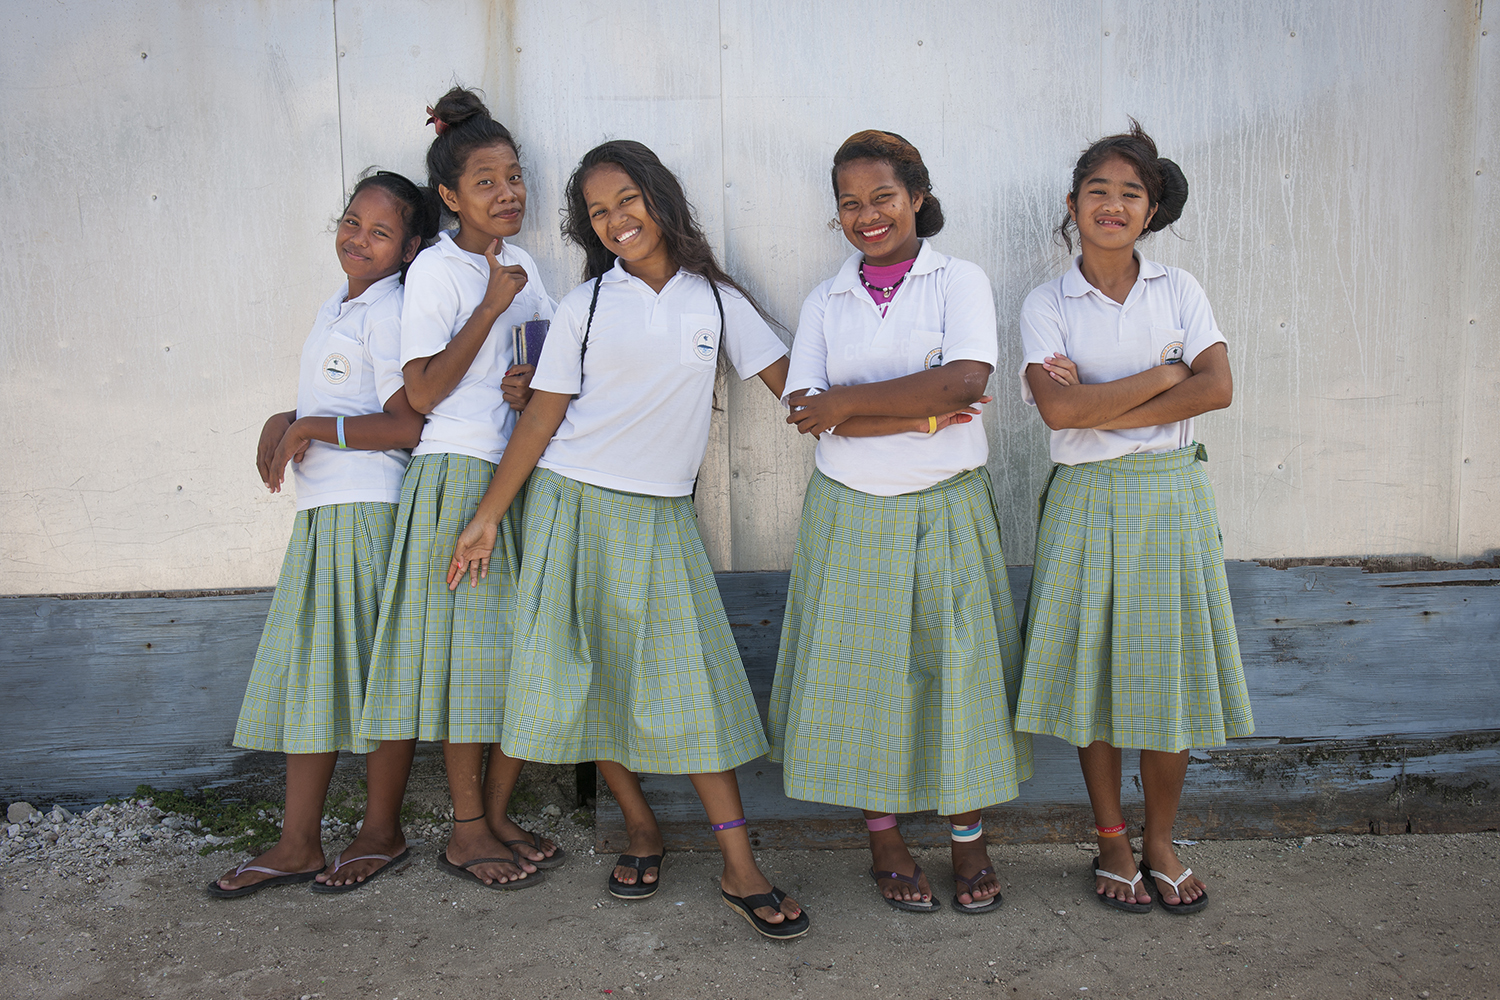 <p>Schoolgirls on Ebeye in the Marshall Islands. Photo by Mark Edward Harris.</p>